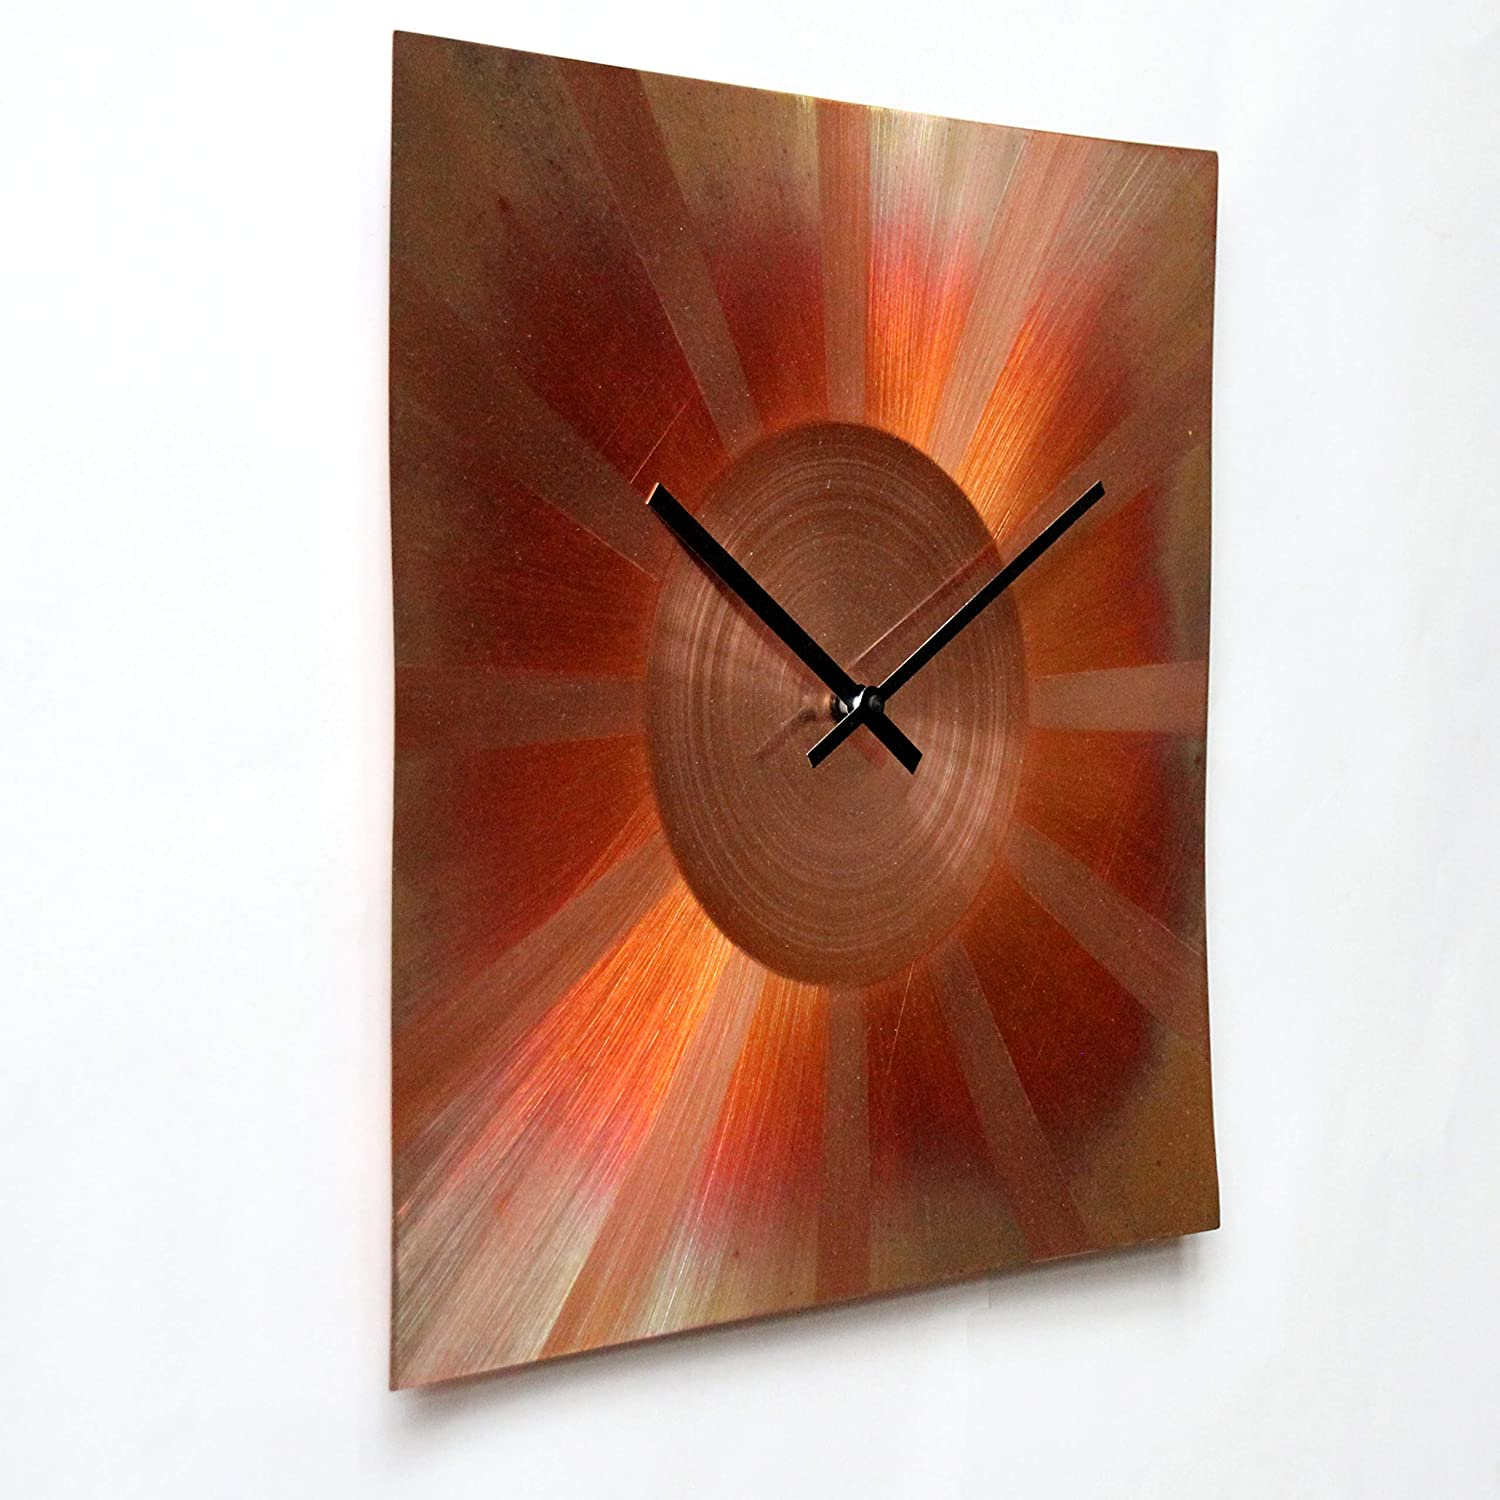 Large Square Copper Wall Clock 16-inch Silent Non Ticking Gift for Home//Office//Kitchen//Bedroom//Living Room